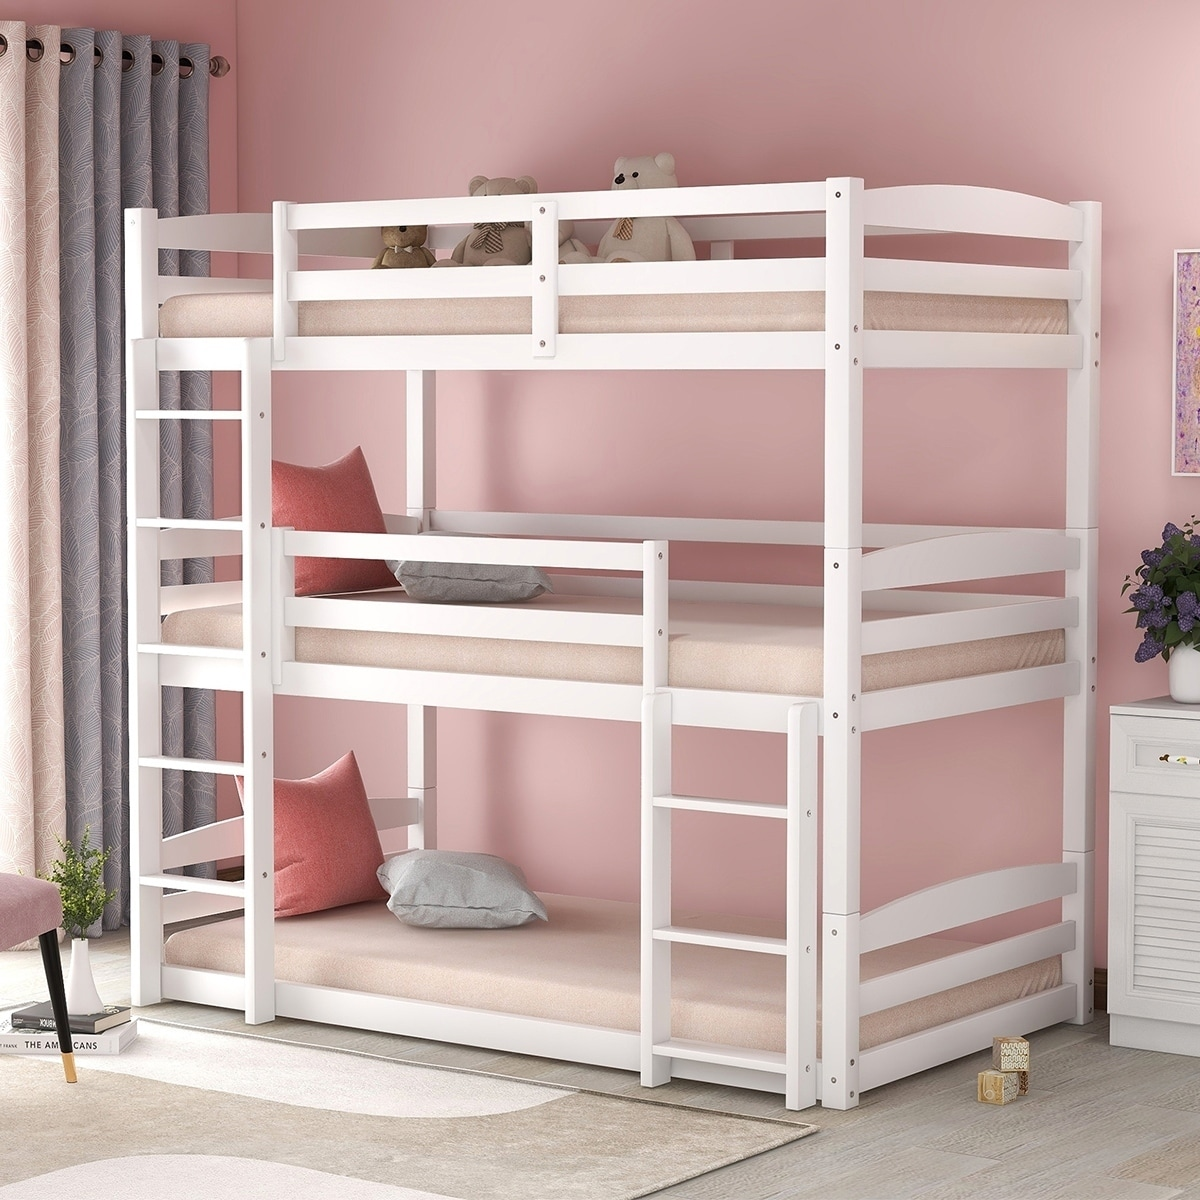 Picture of: Merax Wood Triple Bunk Beds With Built In Ladders Twin Overstock 30617901 Grey